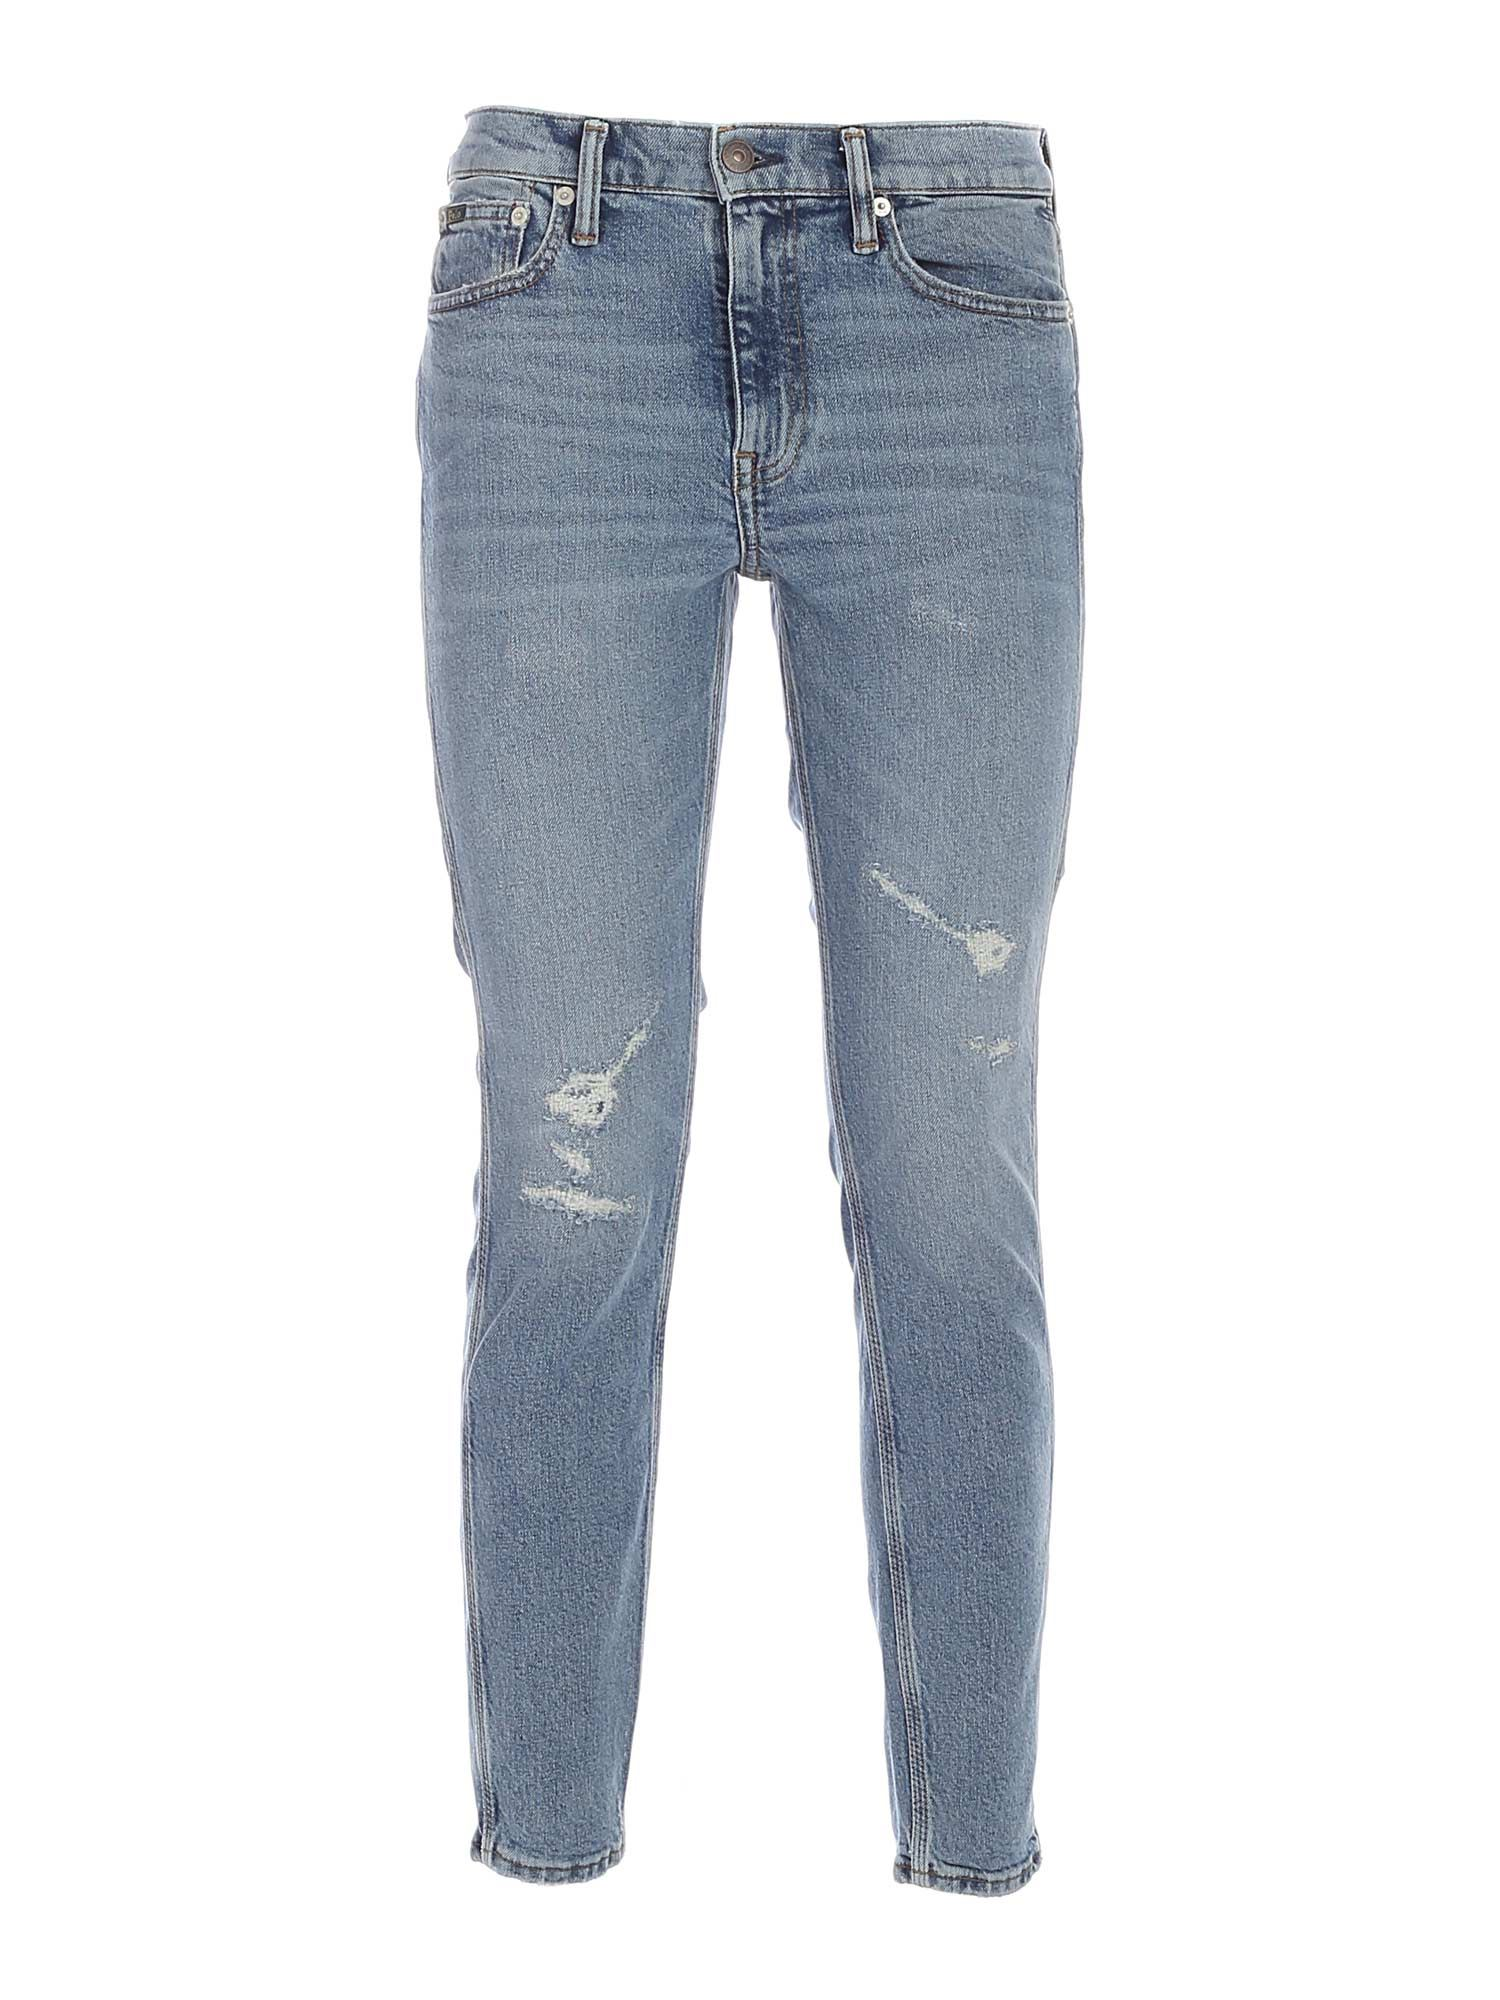 Polo Ralph Lauren The Tompkins Jeans In Faded Light Blue